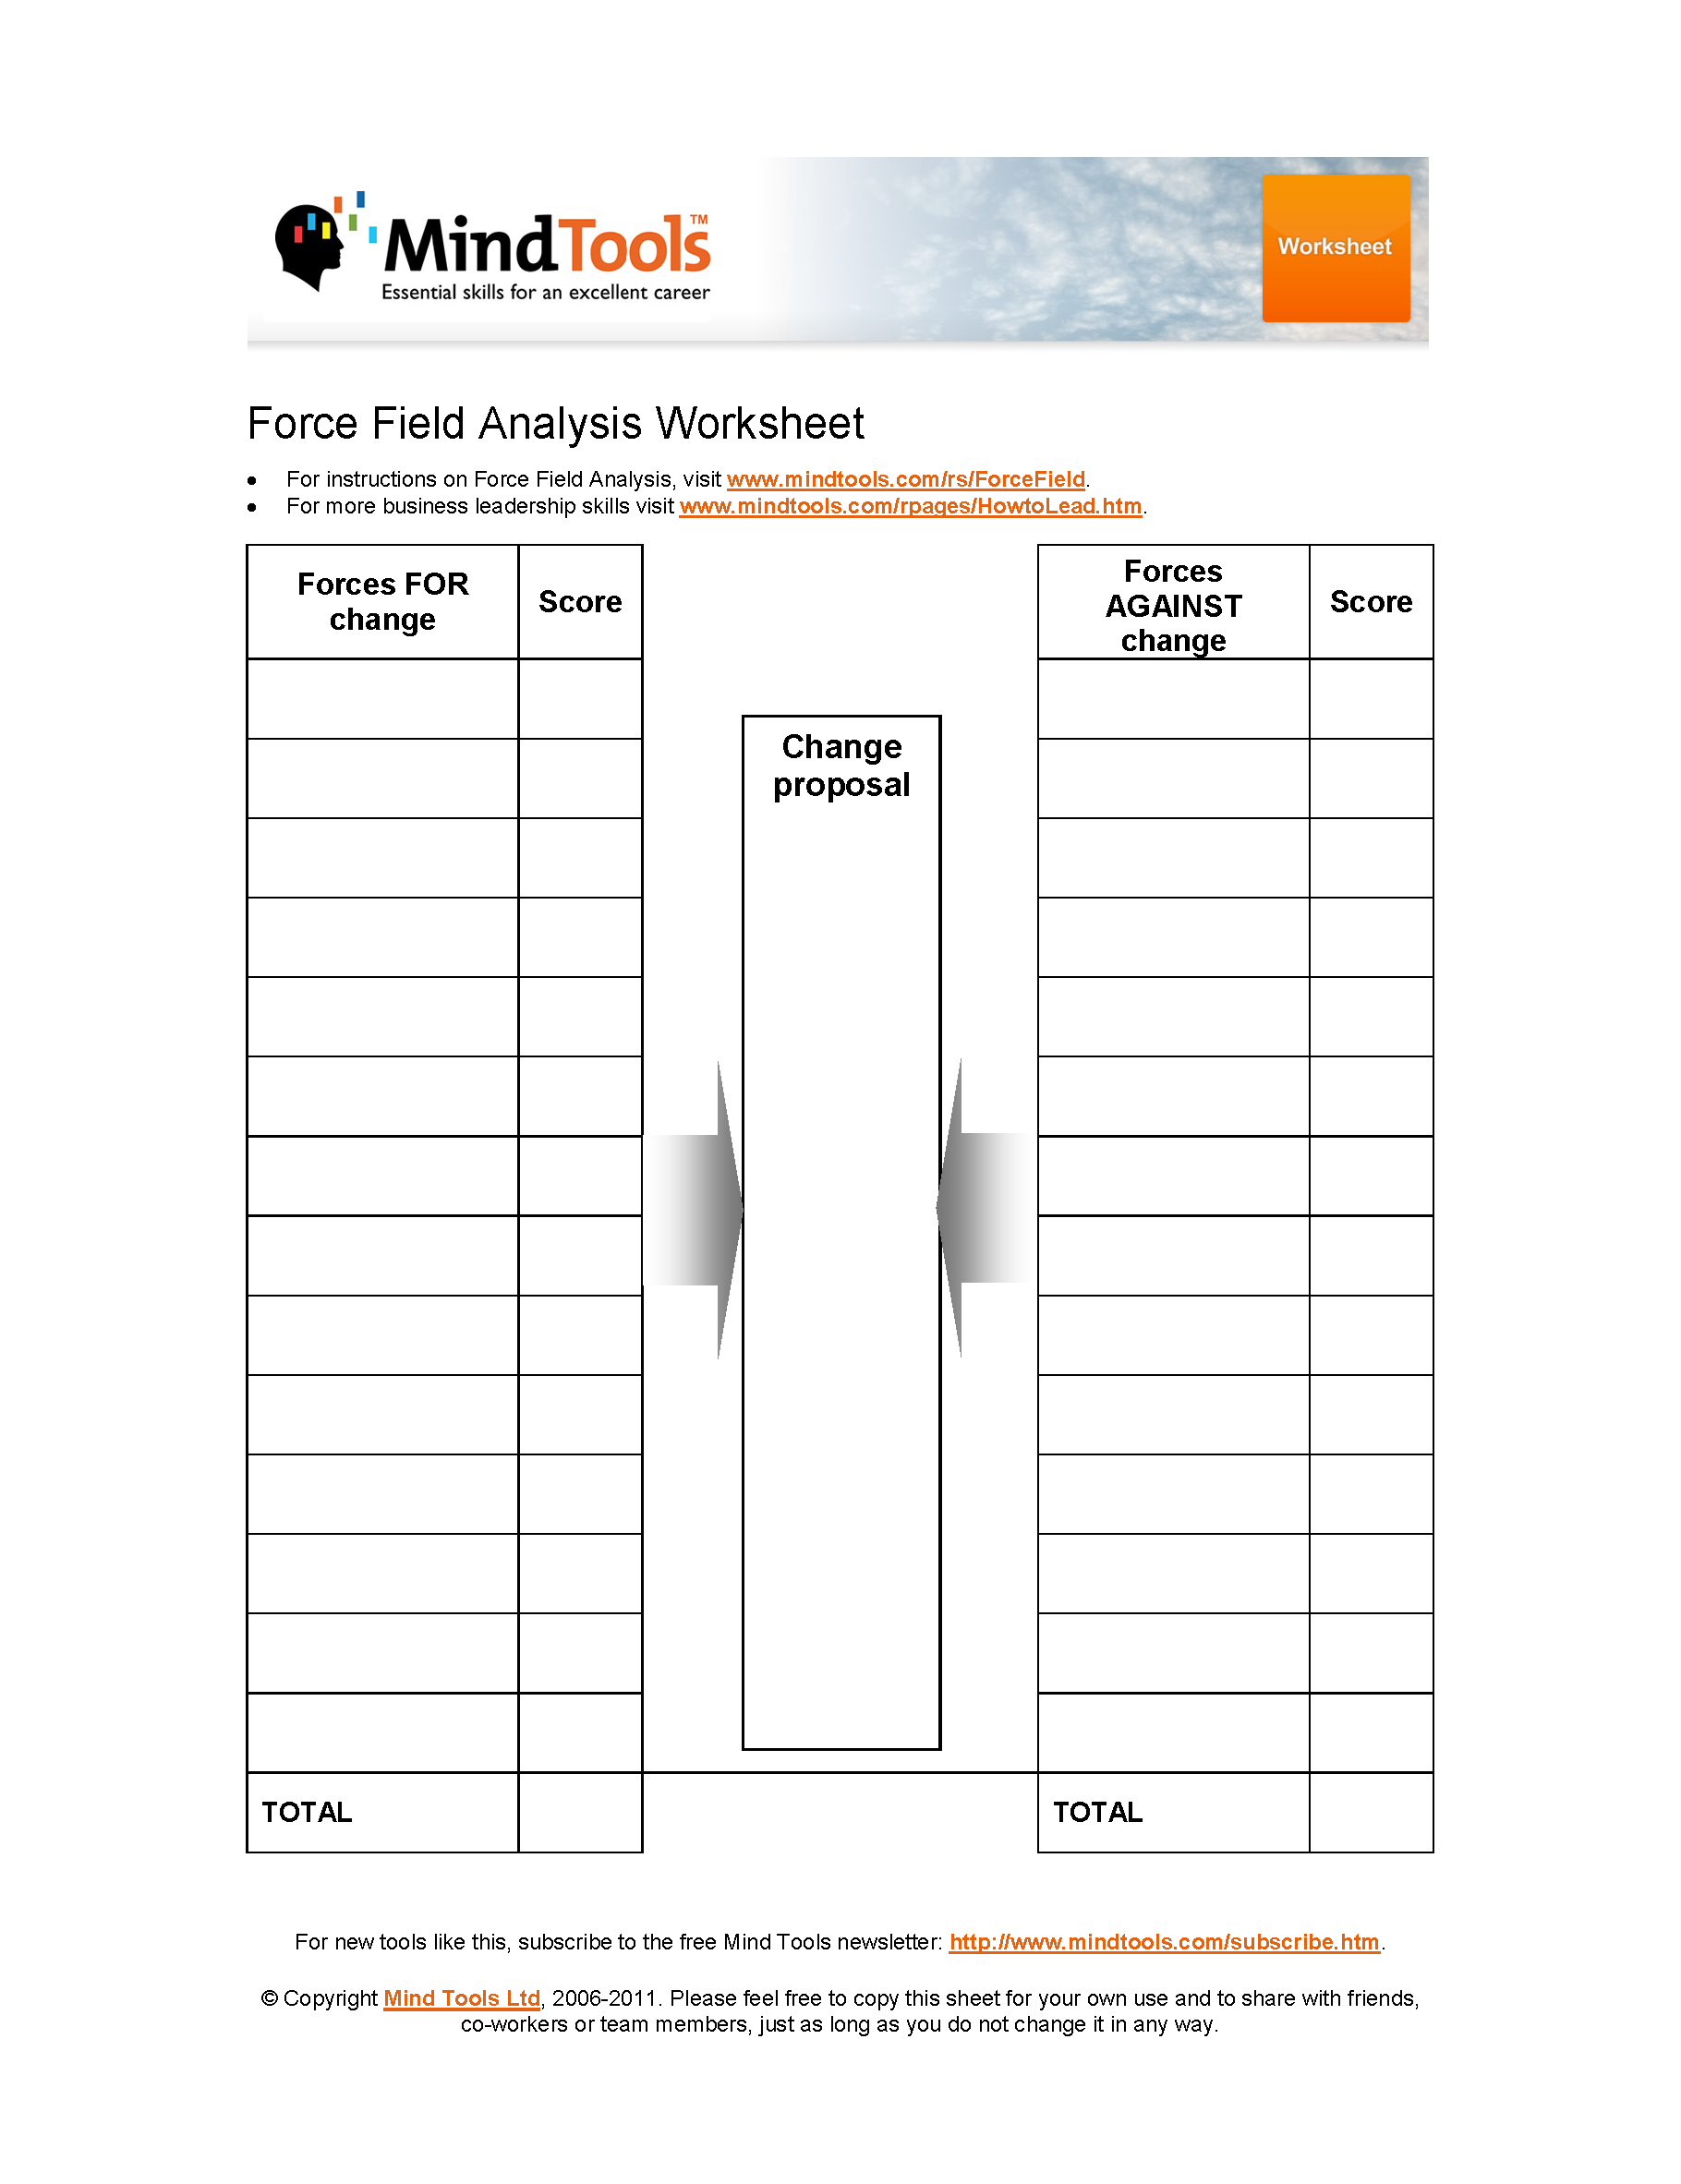 Mindtools Provides A Force Field Analysis Template To Guide The